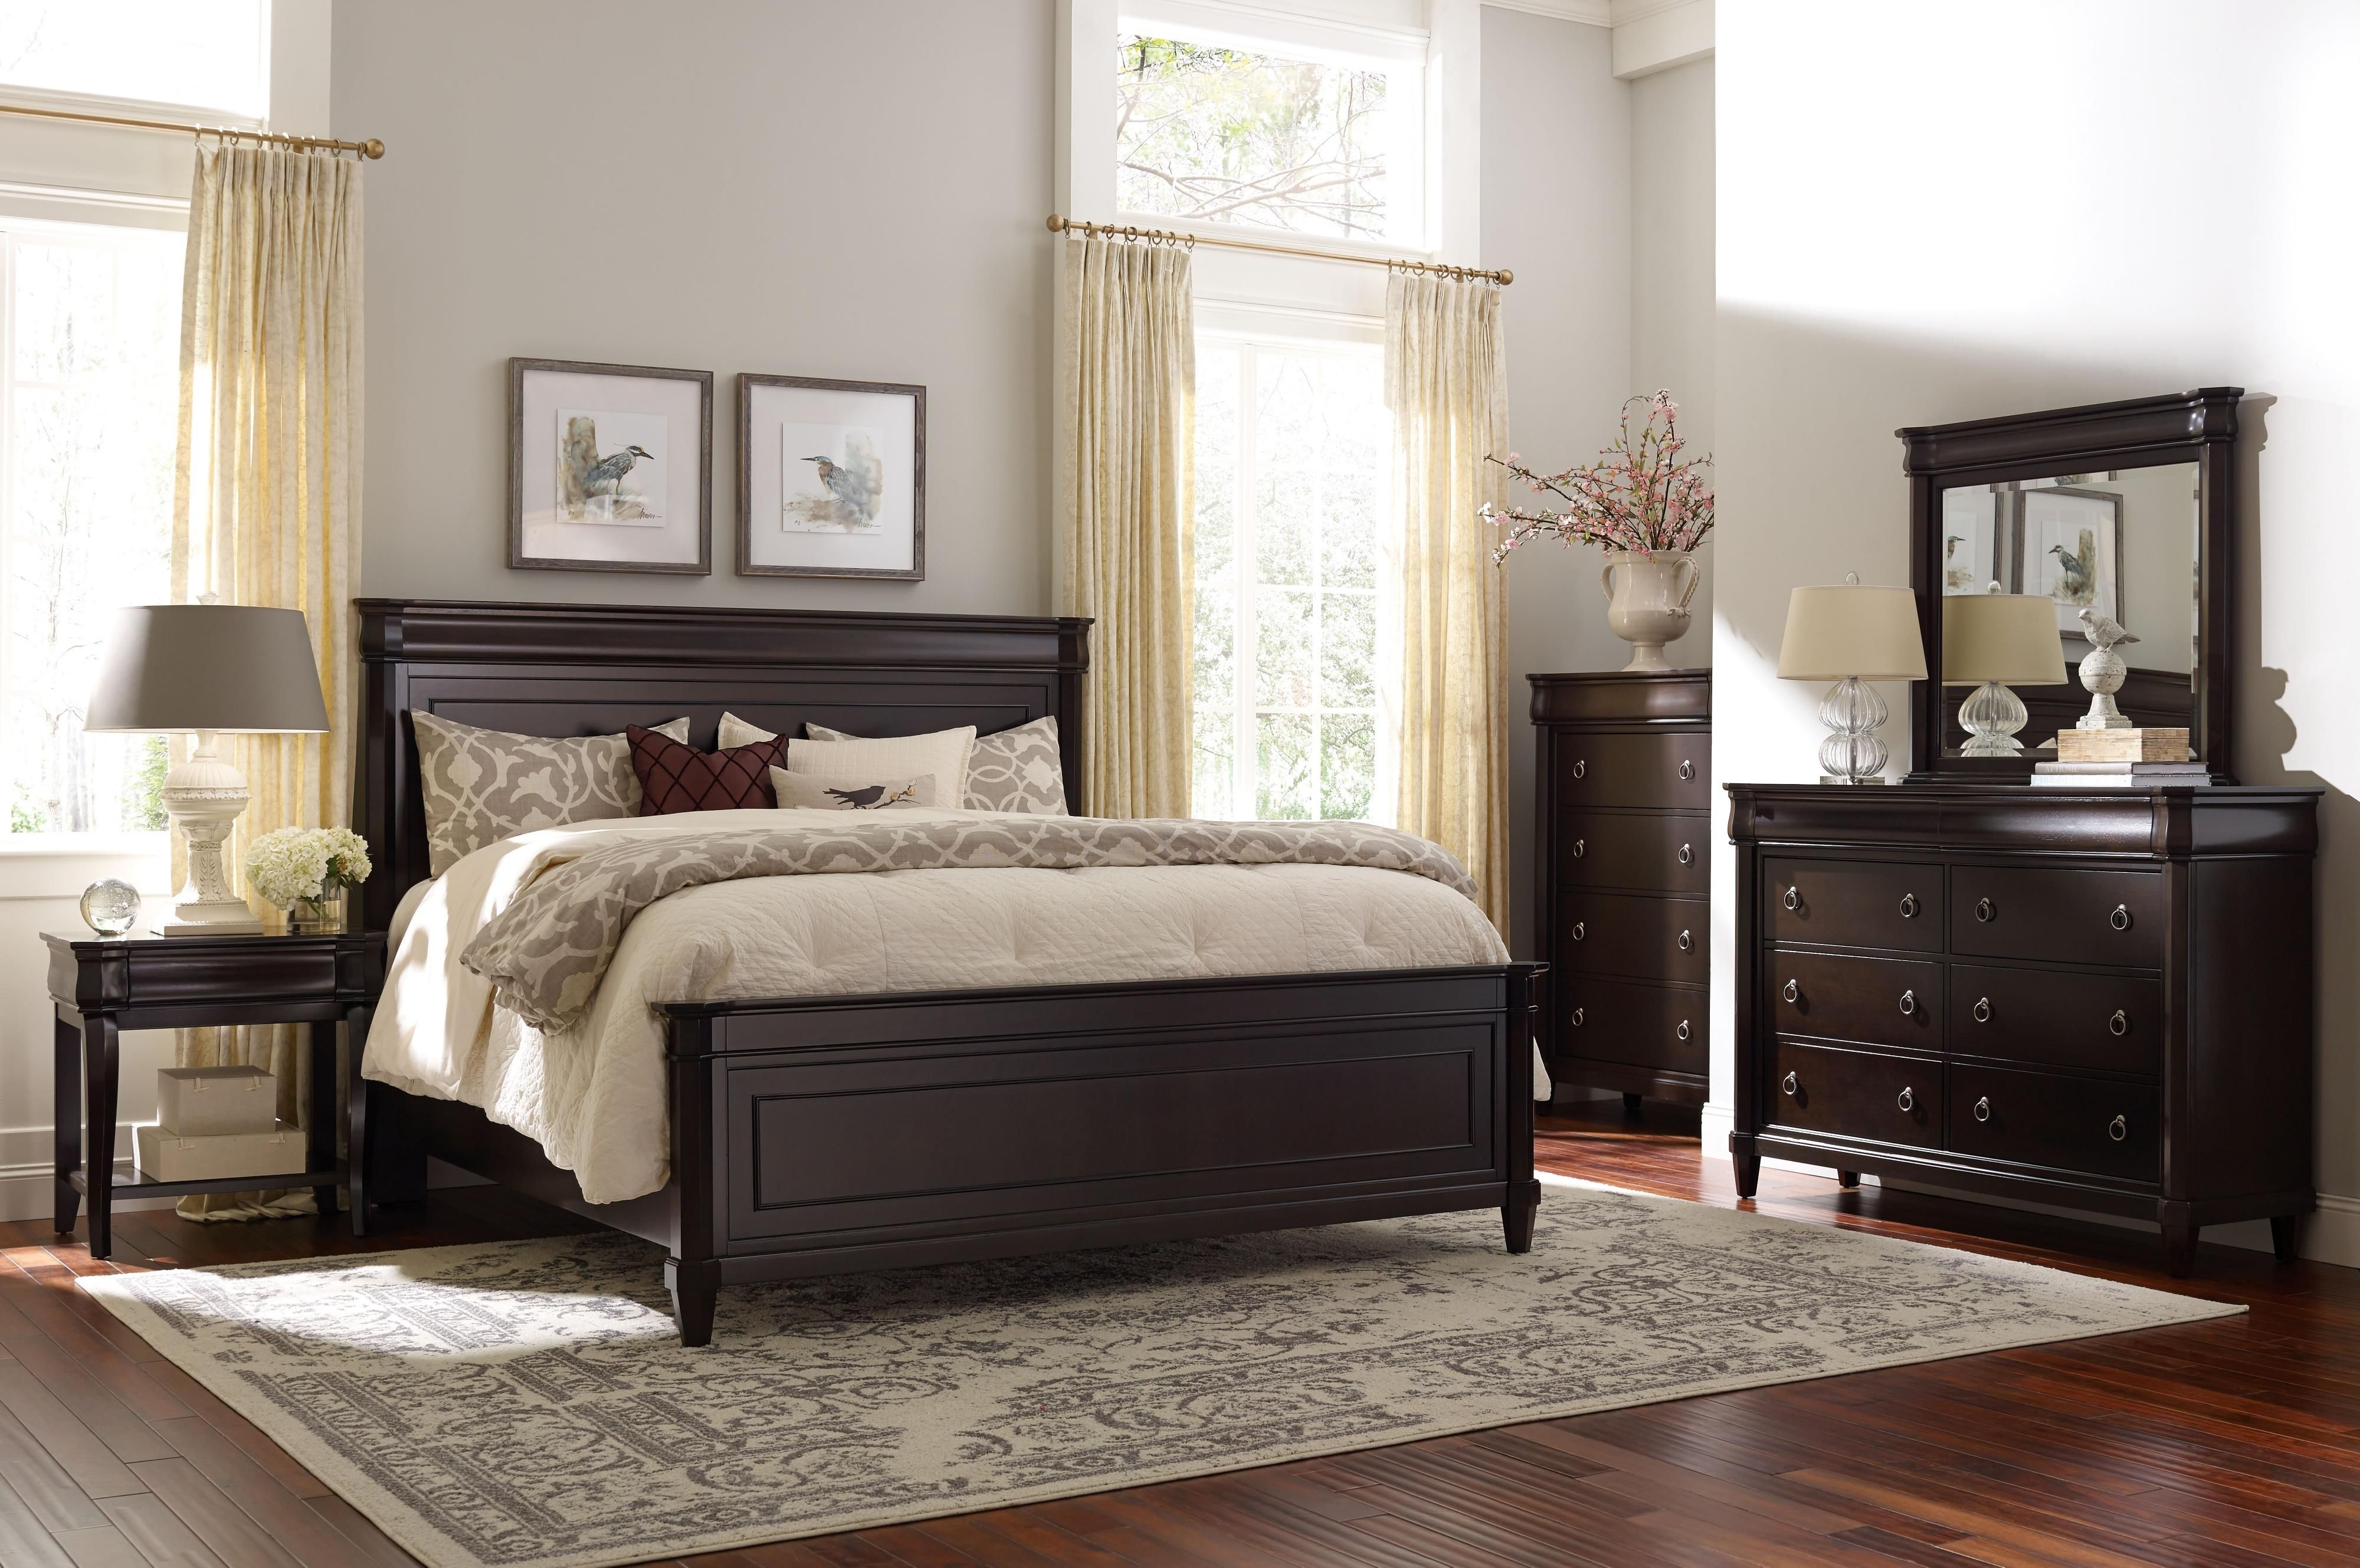 Aryell King Bedroom Group by Broyhill Furniture Broyhill